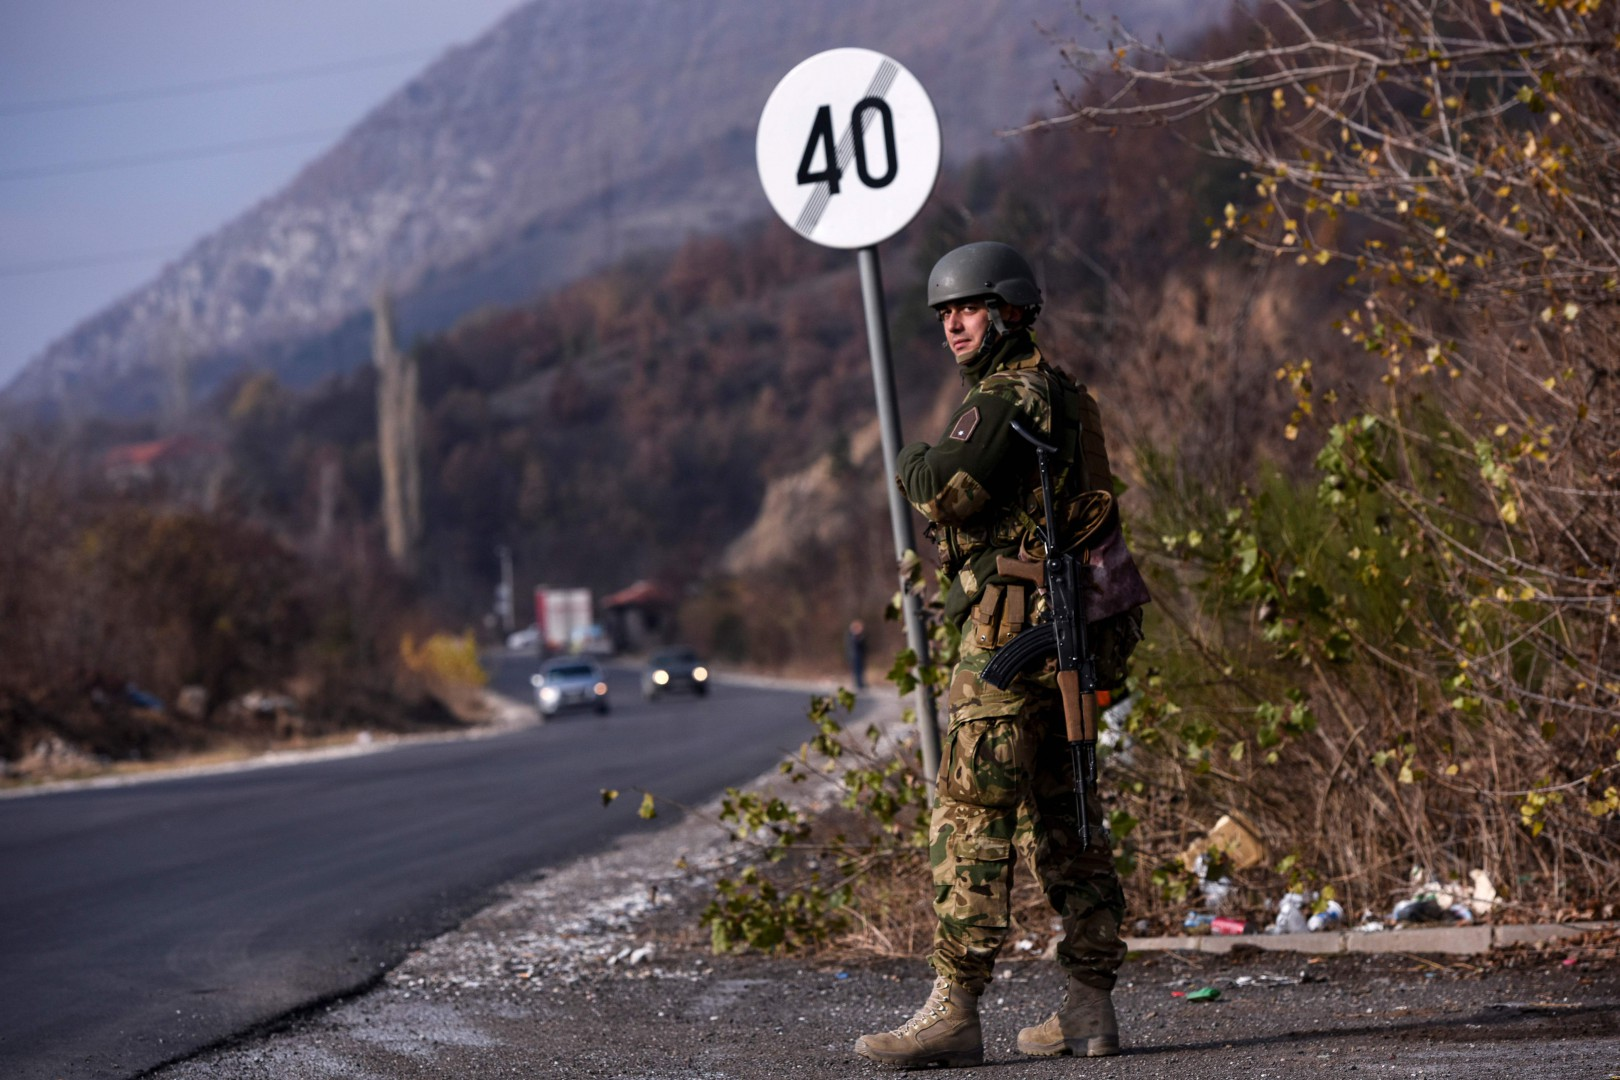 A soldiers of the NATO-led peacekeeping mission in Kosovo (KFOR) secures the area near the village of Rudare in northern Mitrovica  during a protest of Kosovo Serbs on November 23, 2018, following Kosovo's move to slap Serbian imports with a 100 percent tariff. - Kosovo's move has triggered a new surge of tensions between the former war foes on November 22. Kosovo announced the tariff on both Serbian and Bosnian goods  -- though excluding international brands -- on November 21 after accusing Belgrade of sabotaging its bid to join Interpol, the international police organisation. Serbia has long fought to thwart Kosovo, which is home to an ethnic Albanian majority, from joining international organisations like the United Nations. (Photo by Armend NIMANI / AFP)